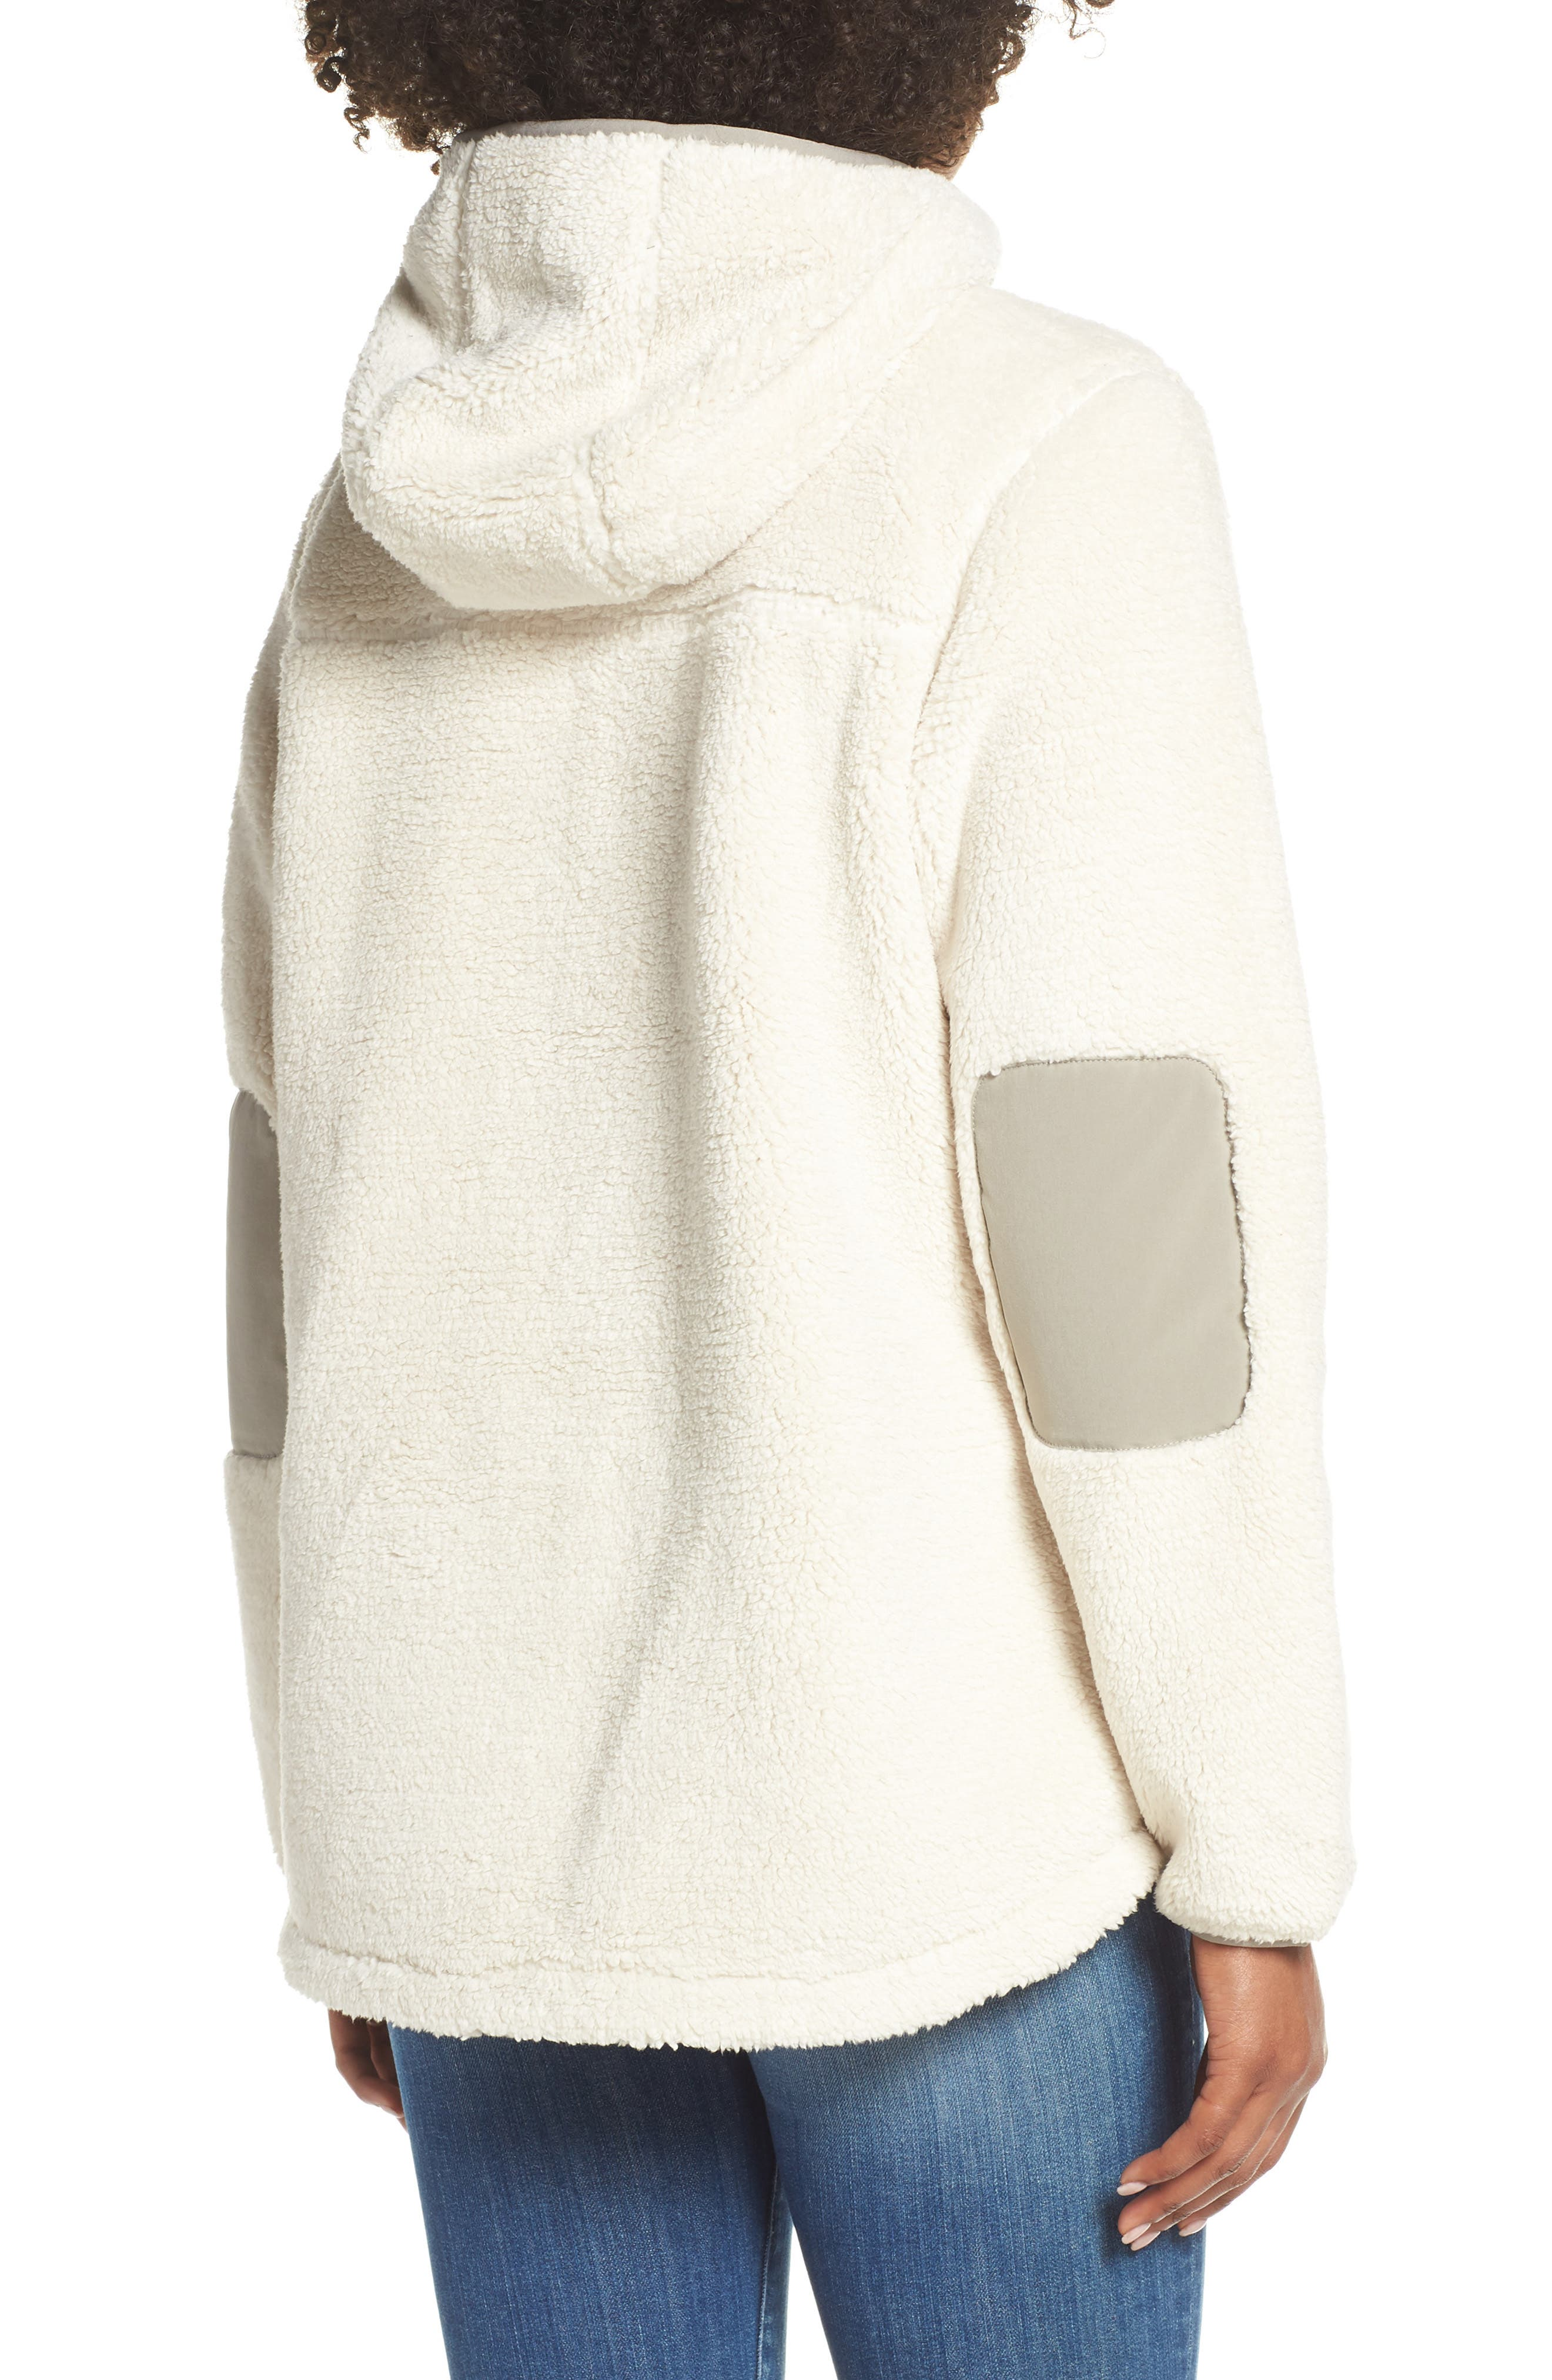 THE NORTH FACE, Campshire High Pile Fleece Pullover Hoodie, Alternate thumbnail 2, color, VINTAGE WHITE/ GREY